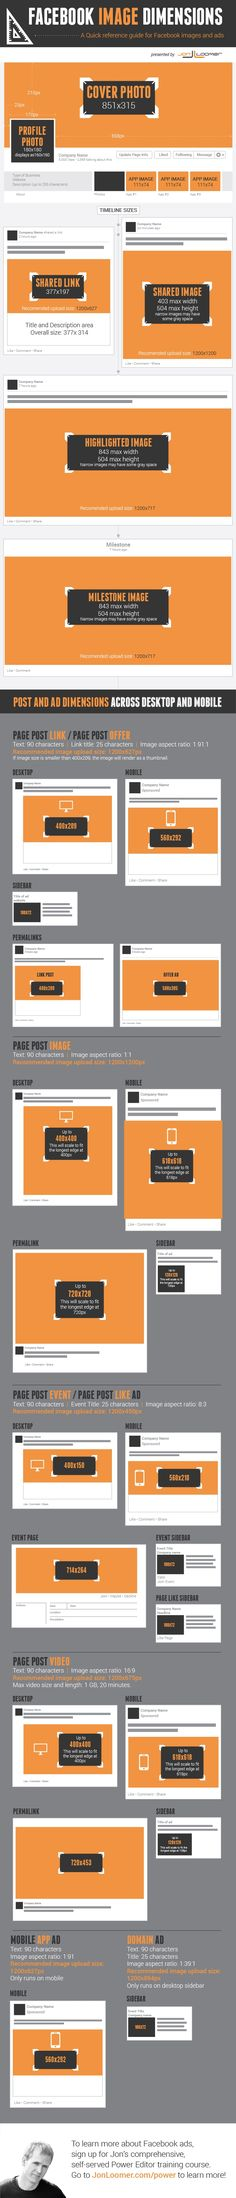 INFOGRAPHIC: Facebook Image Dimensions Guide - AllFacebook